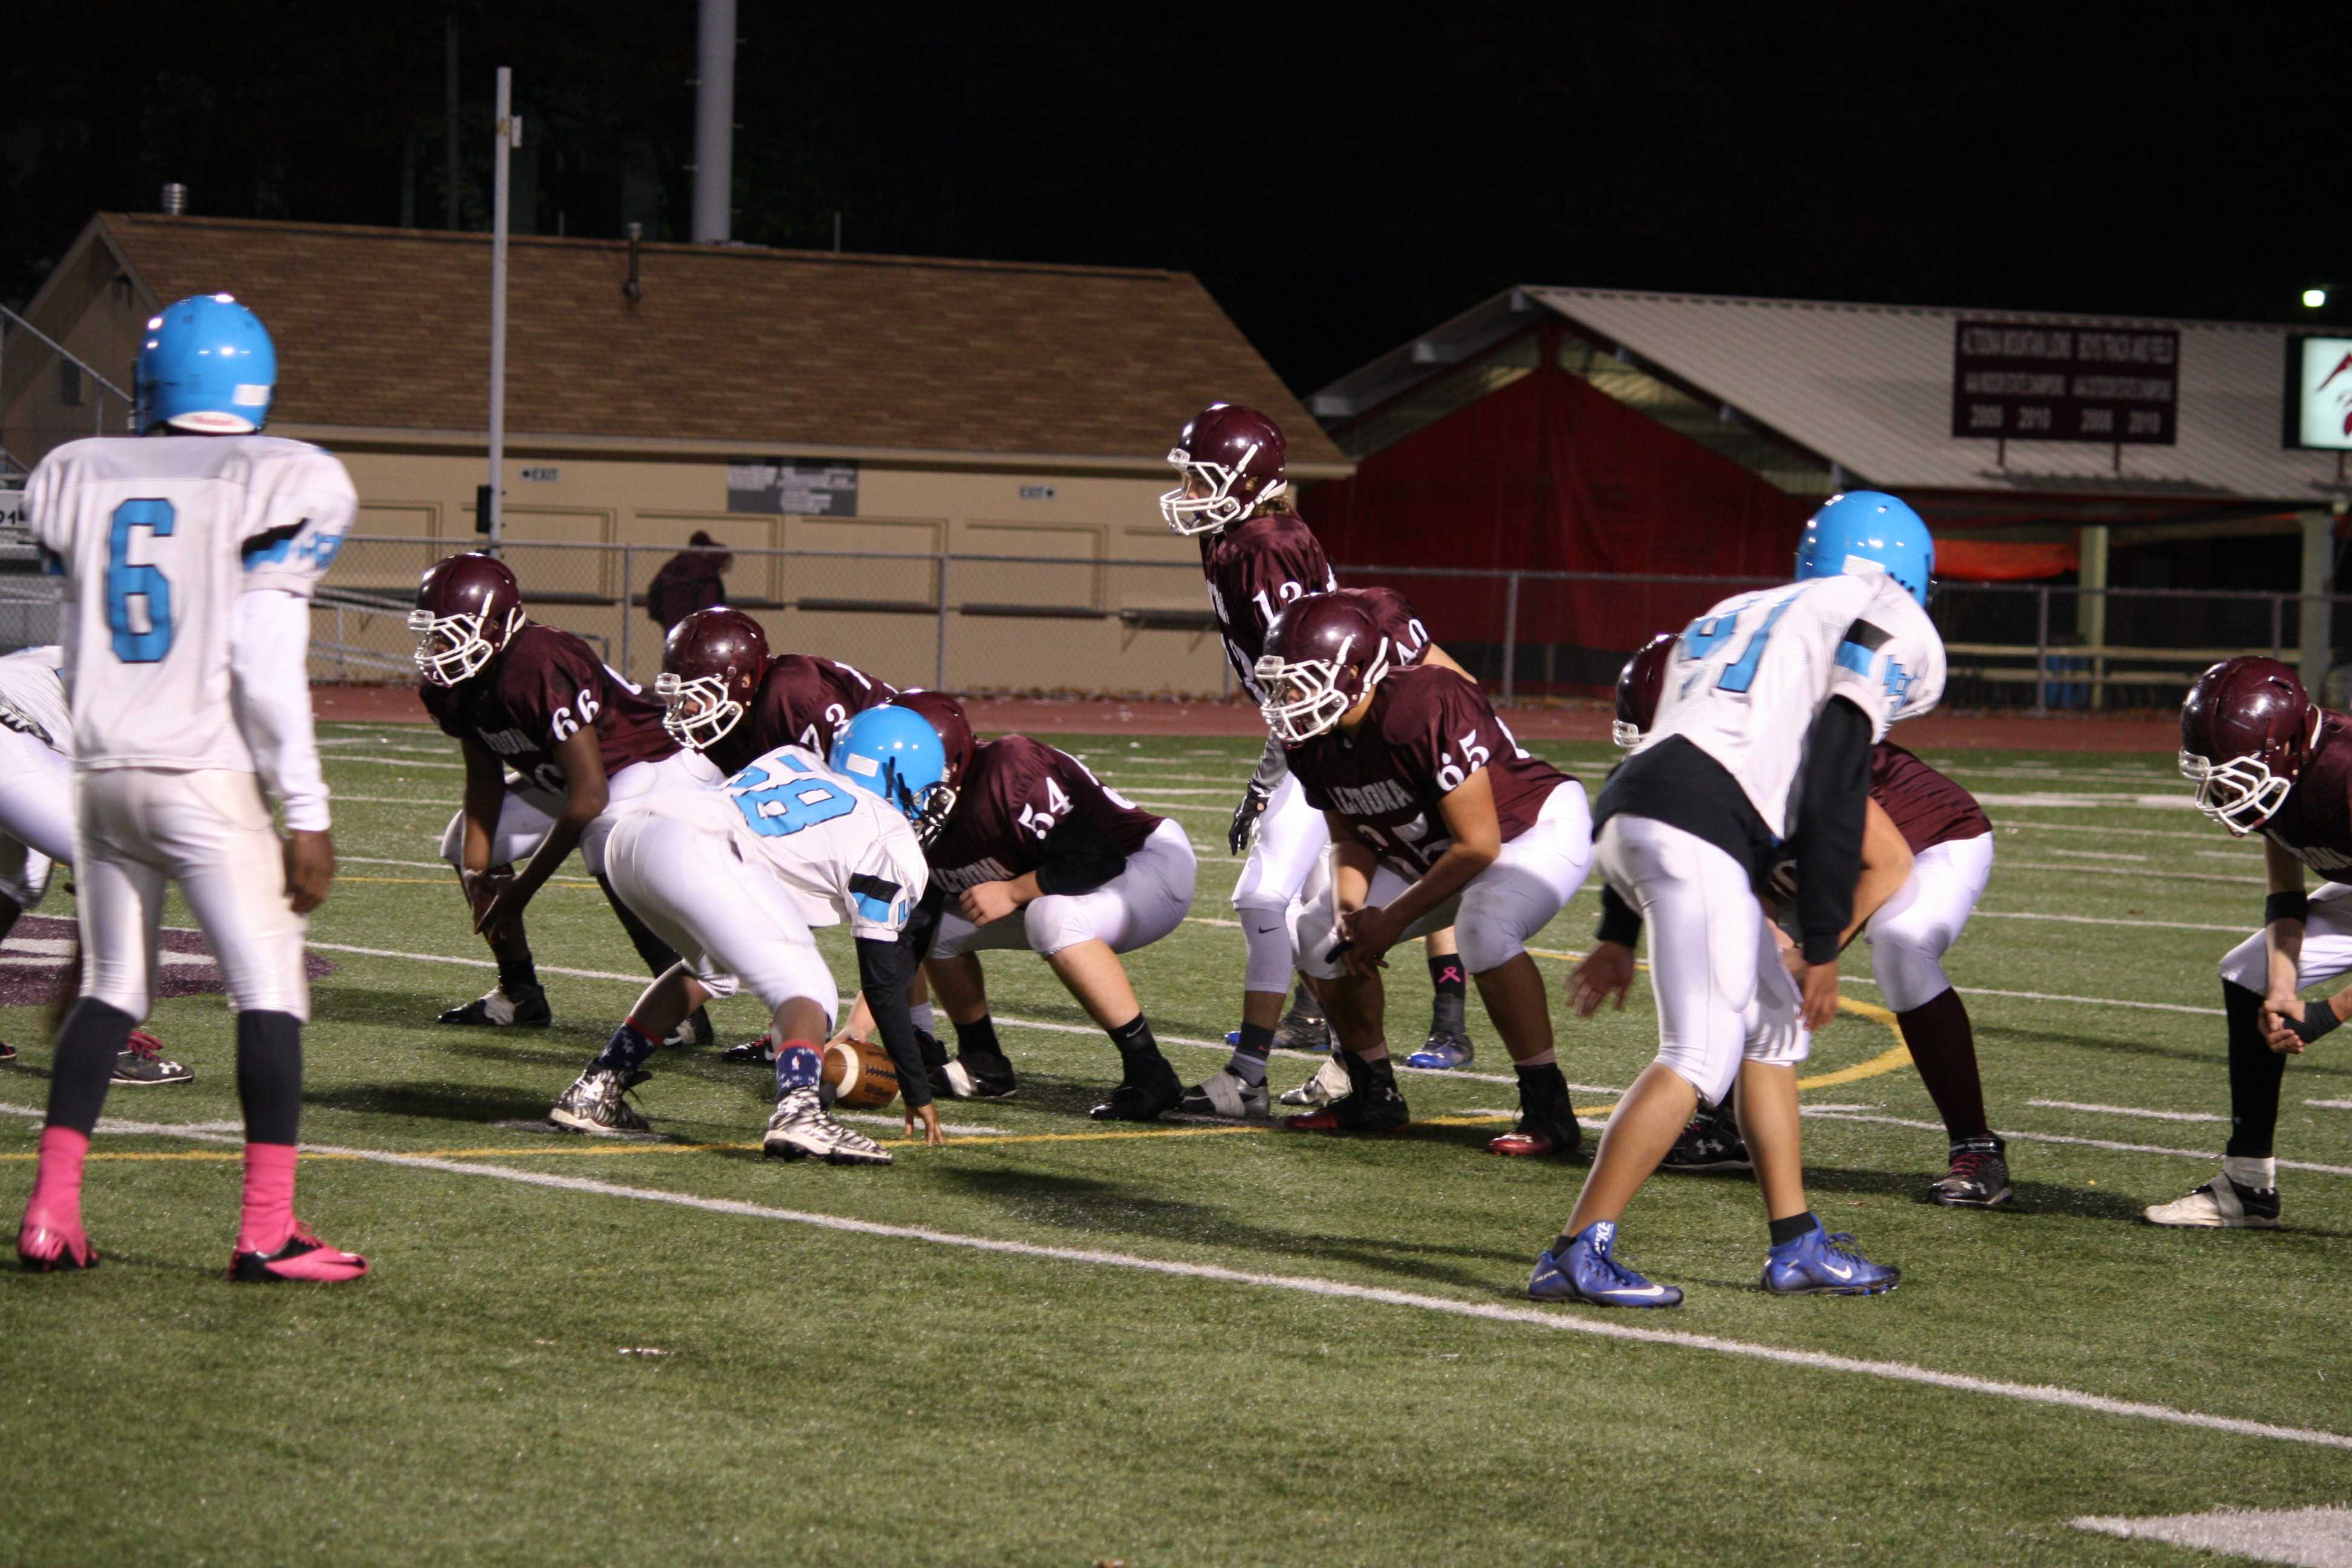 Players tackle their way to finish